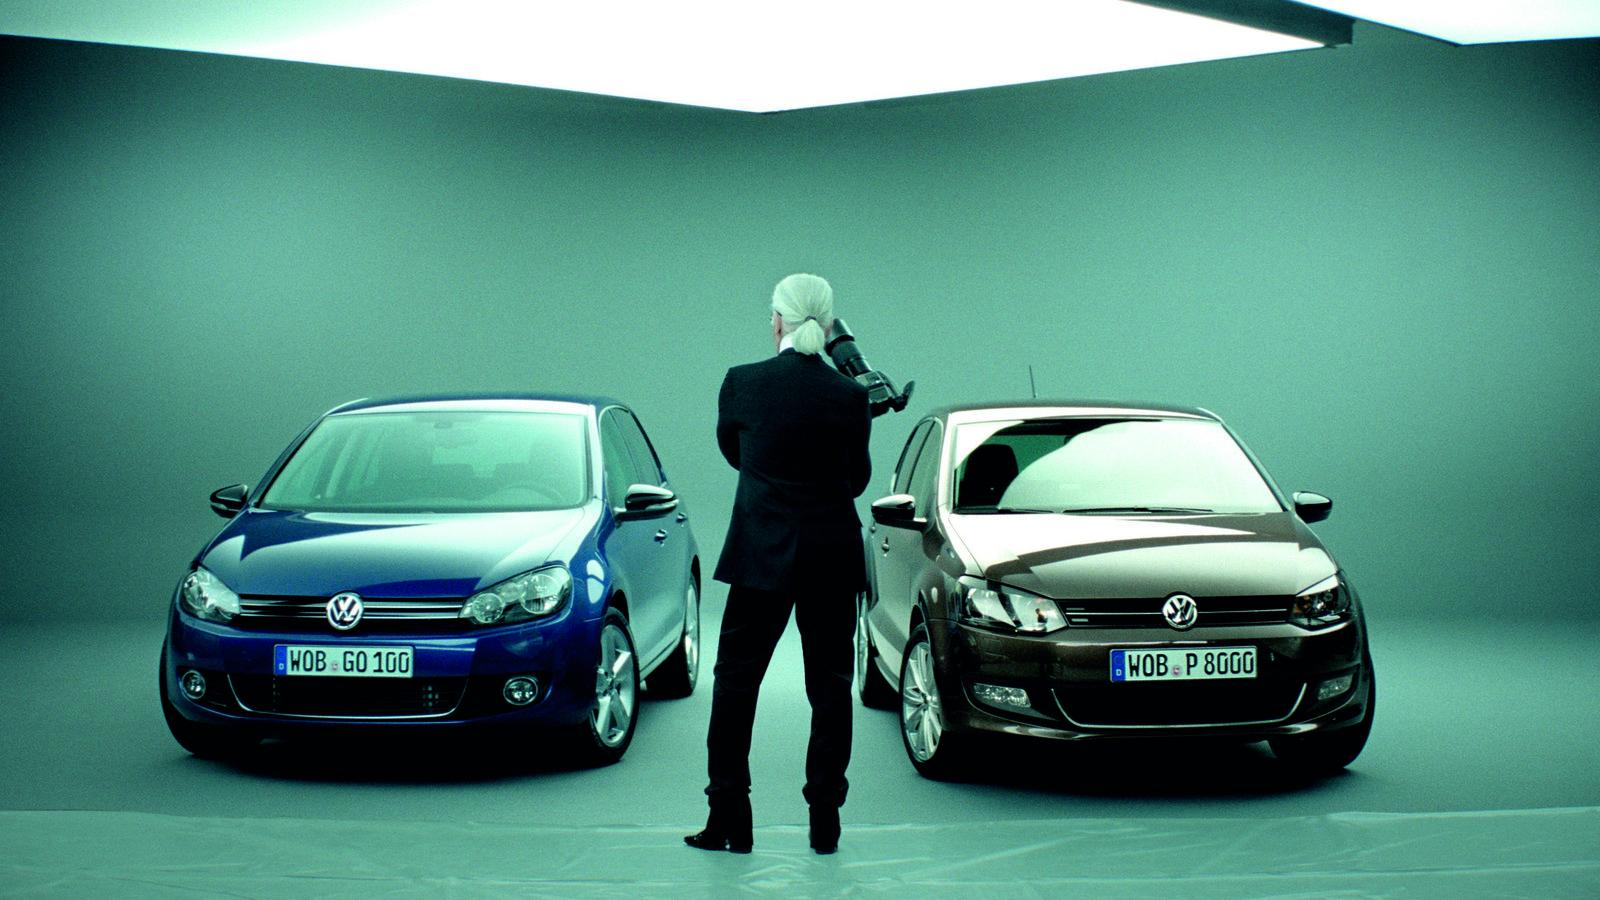 Volkswagen Polo And Golf Style By Karl Lagerfeld